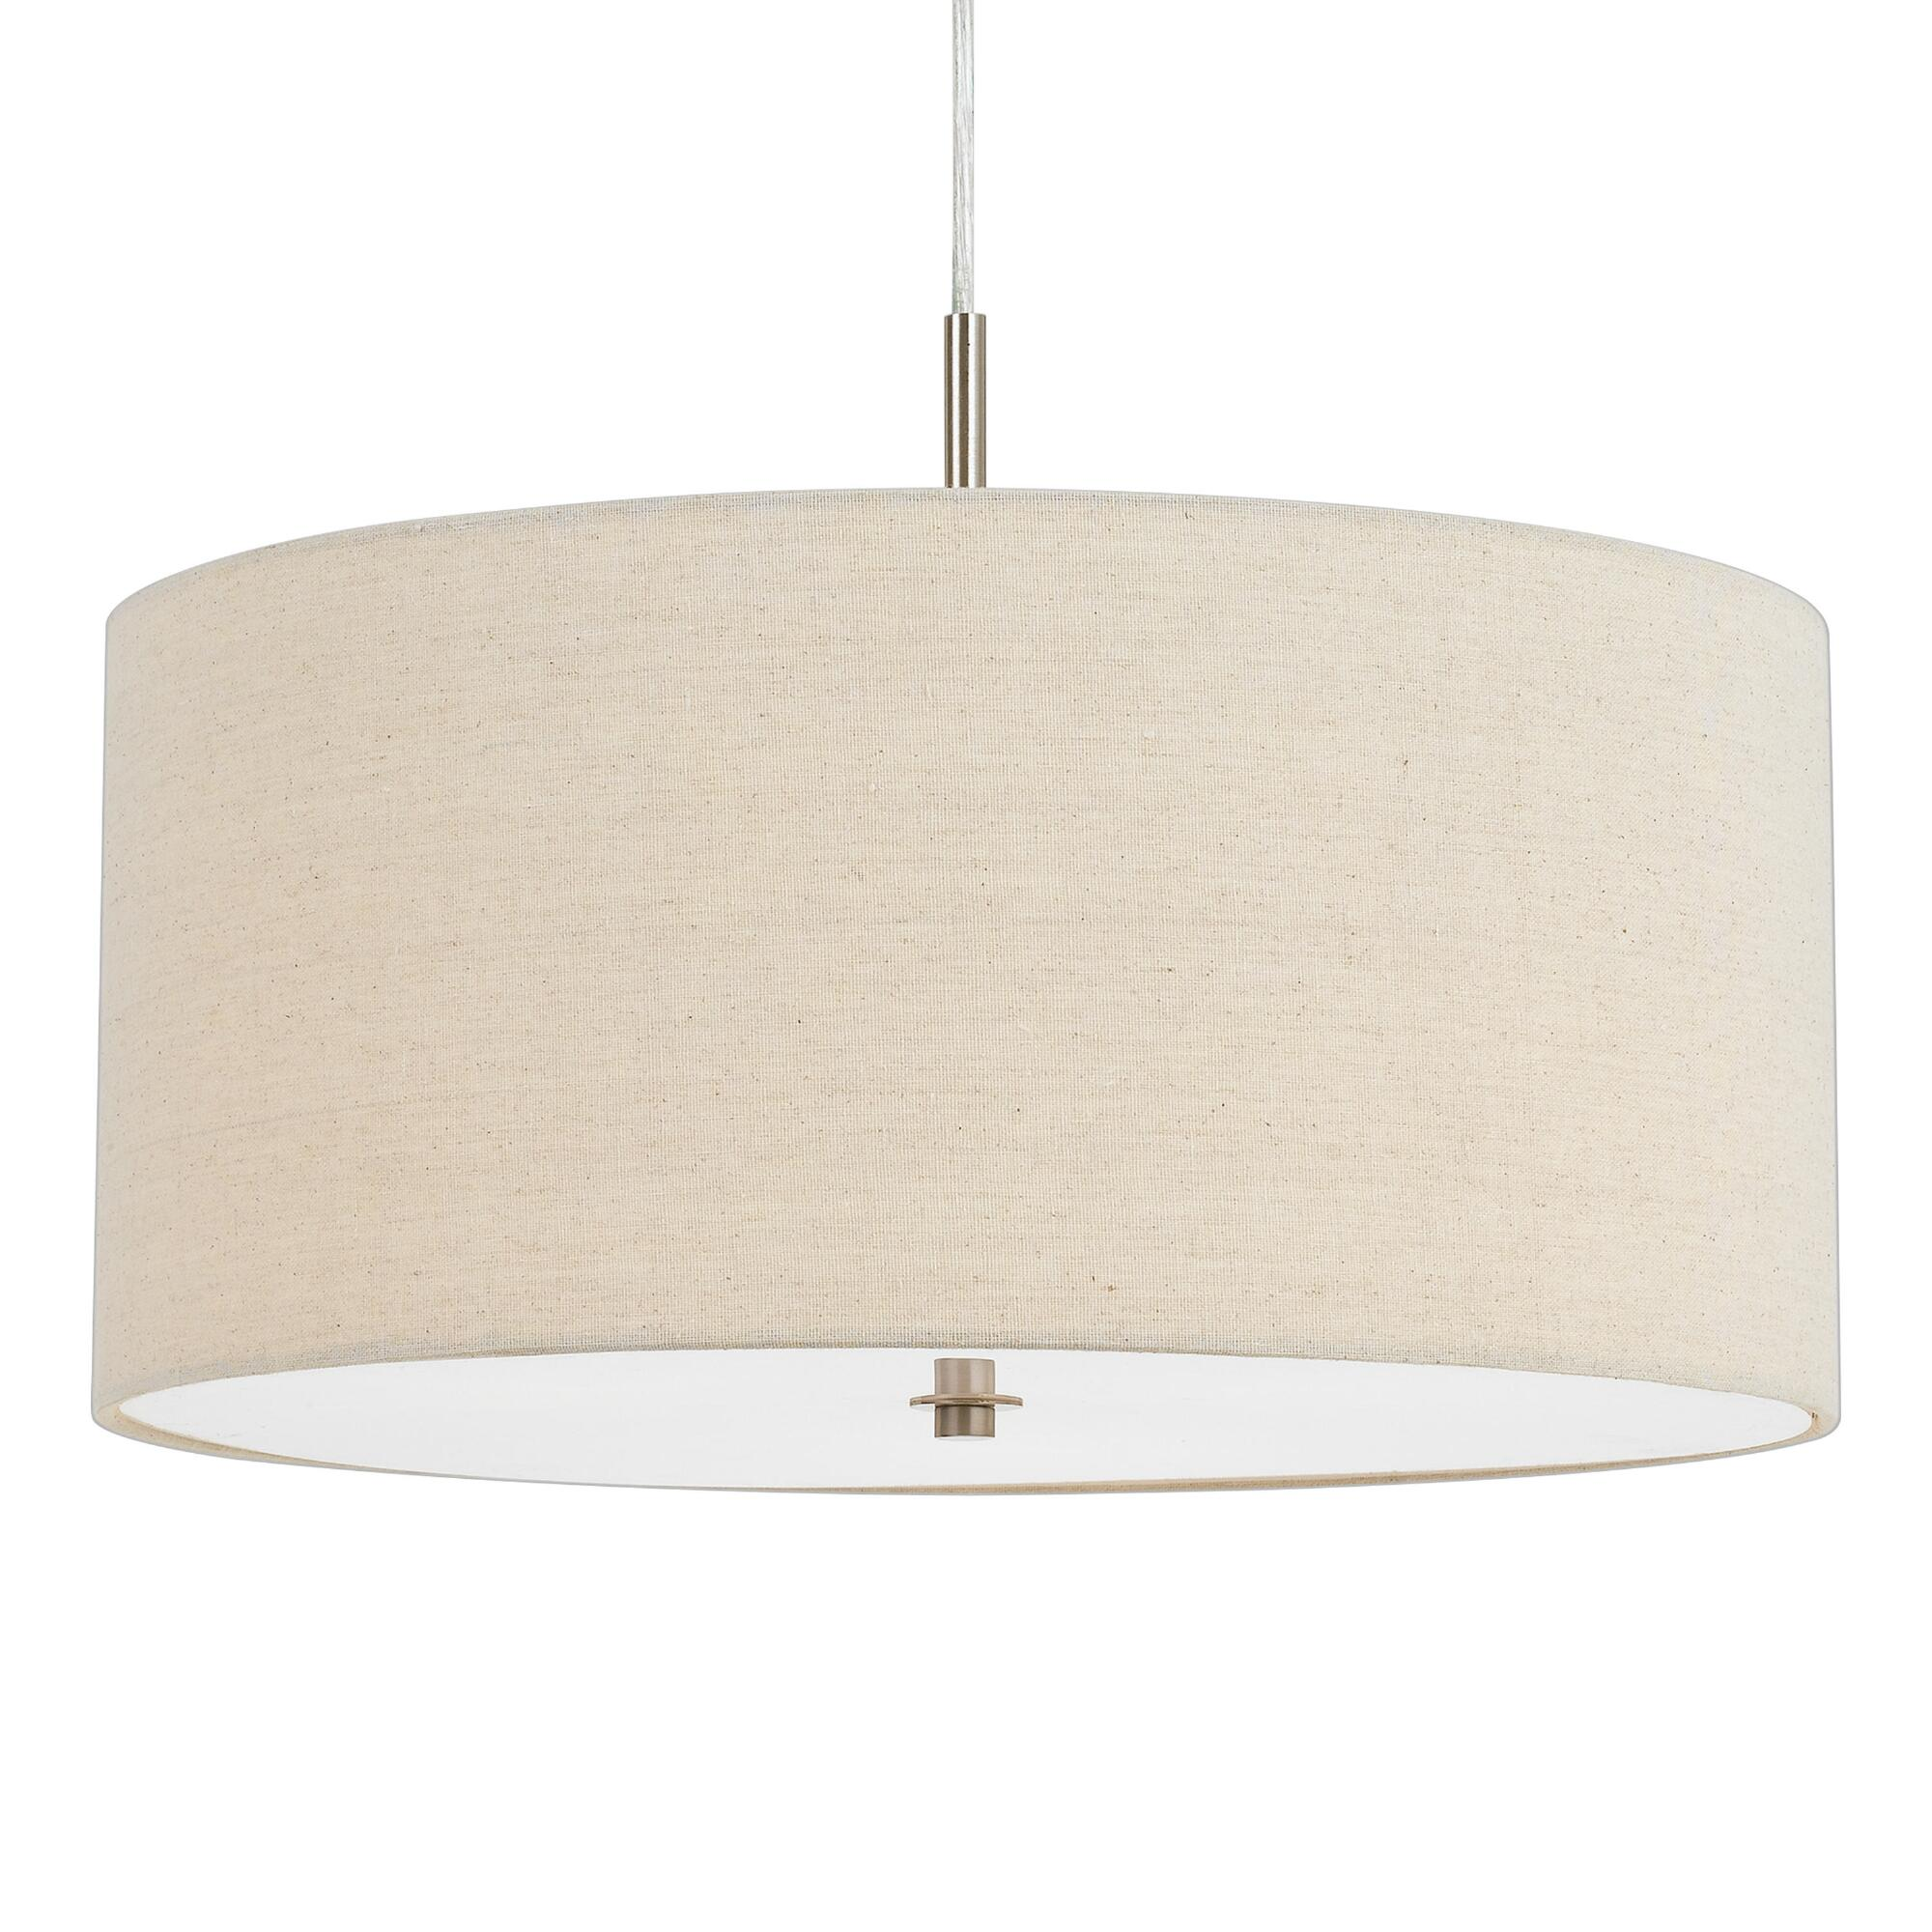 Small Natural Linen Drum 3 Light Billie Pendant Lamp by World Market